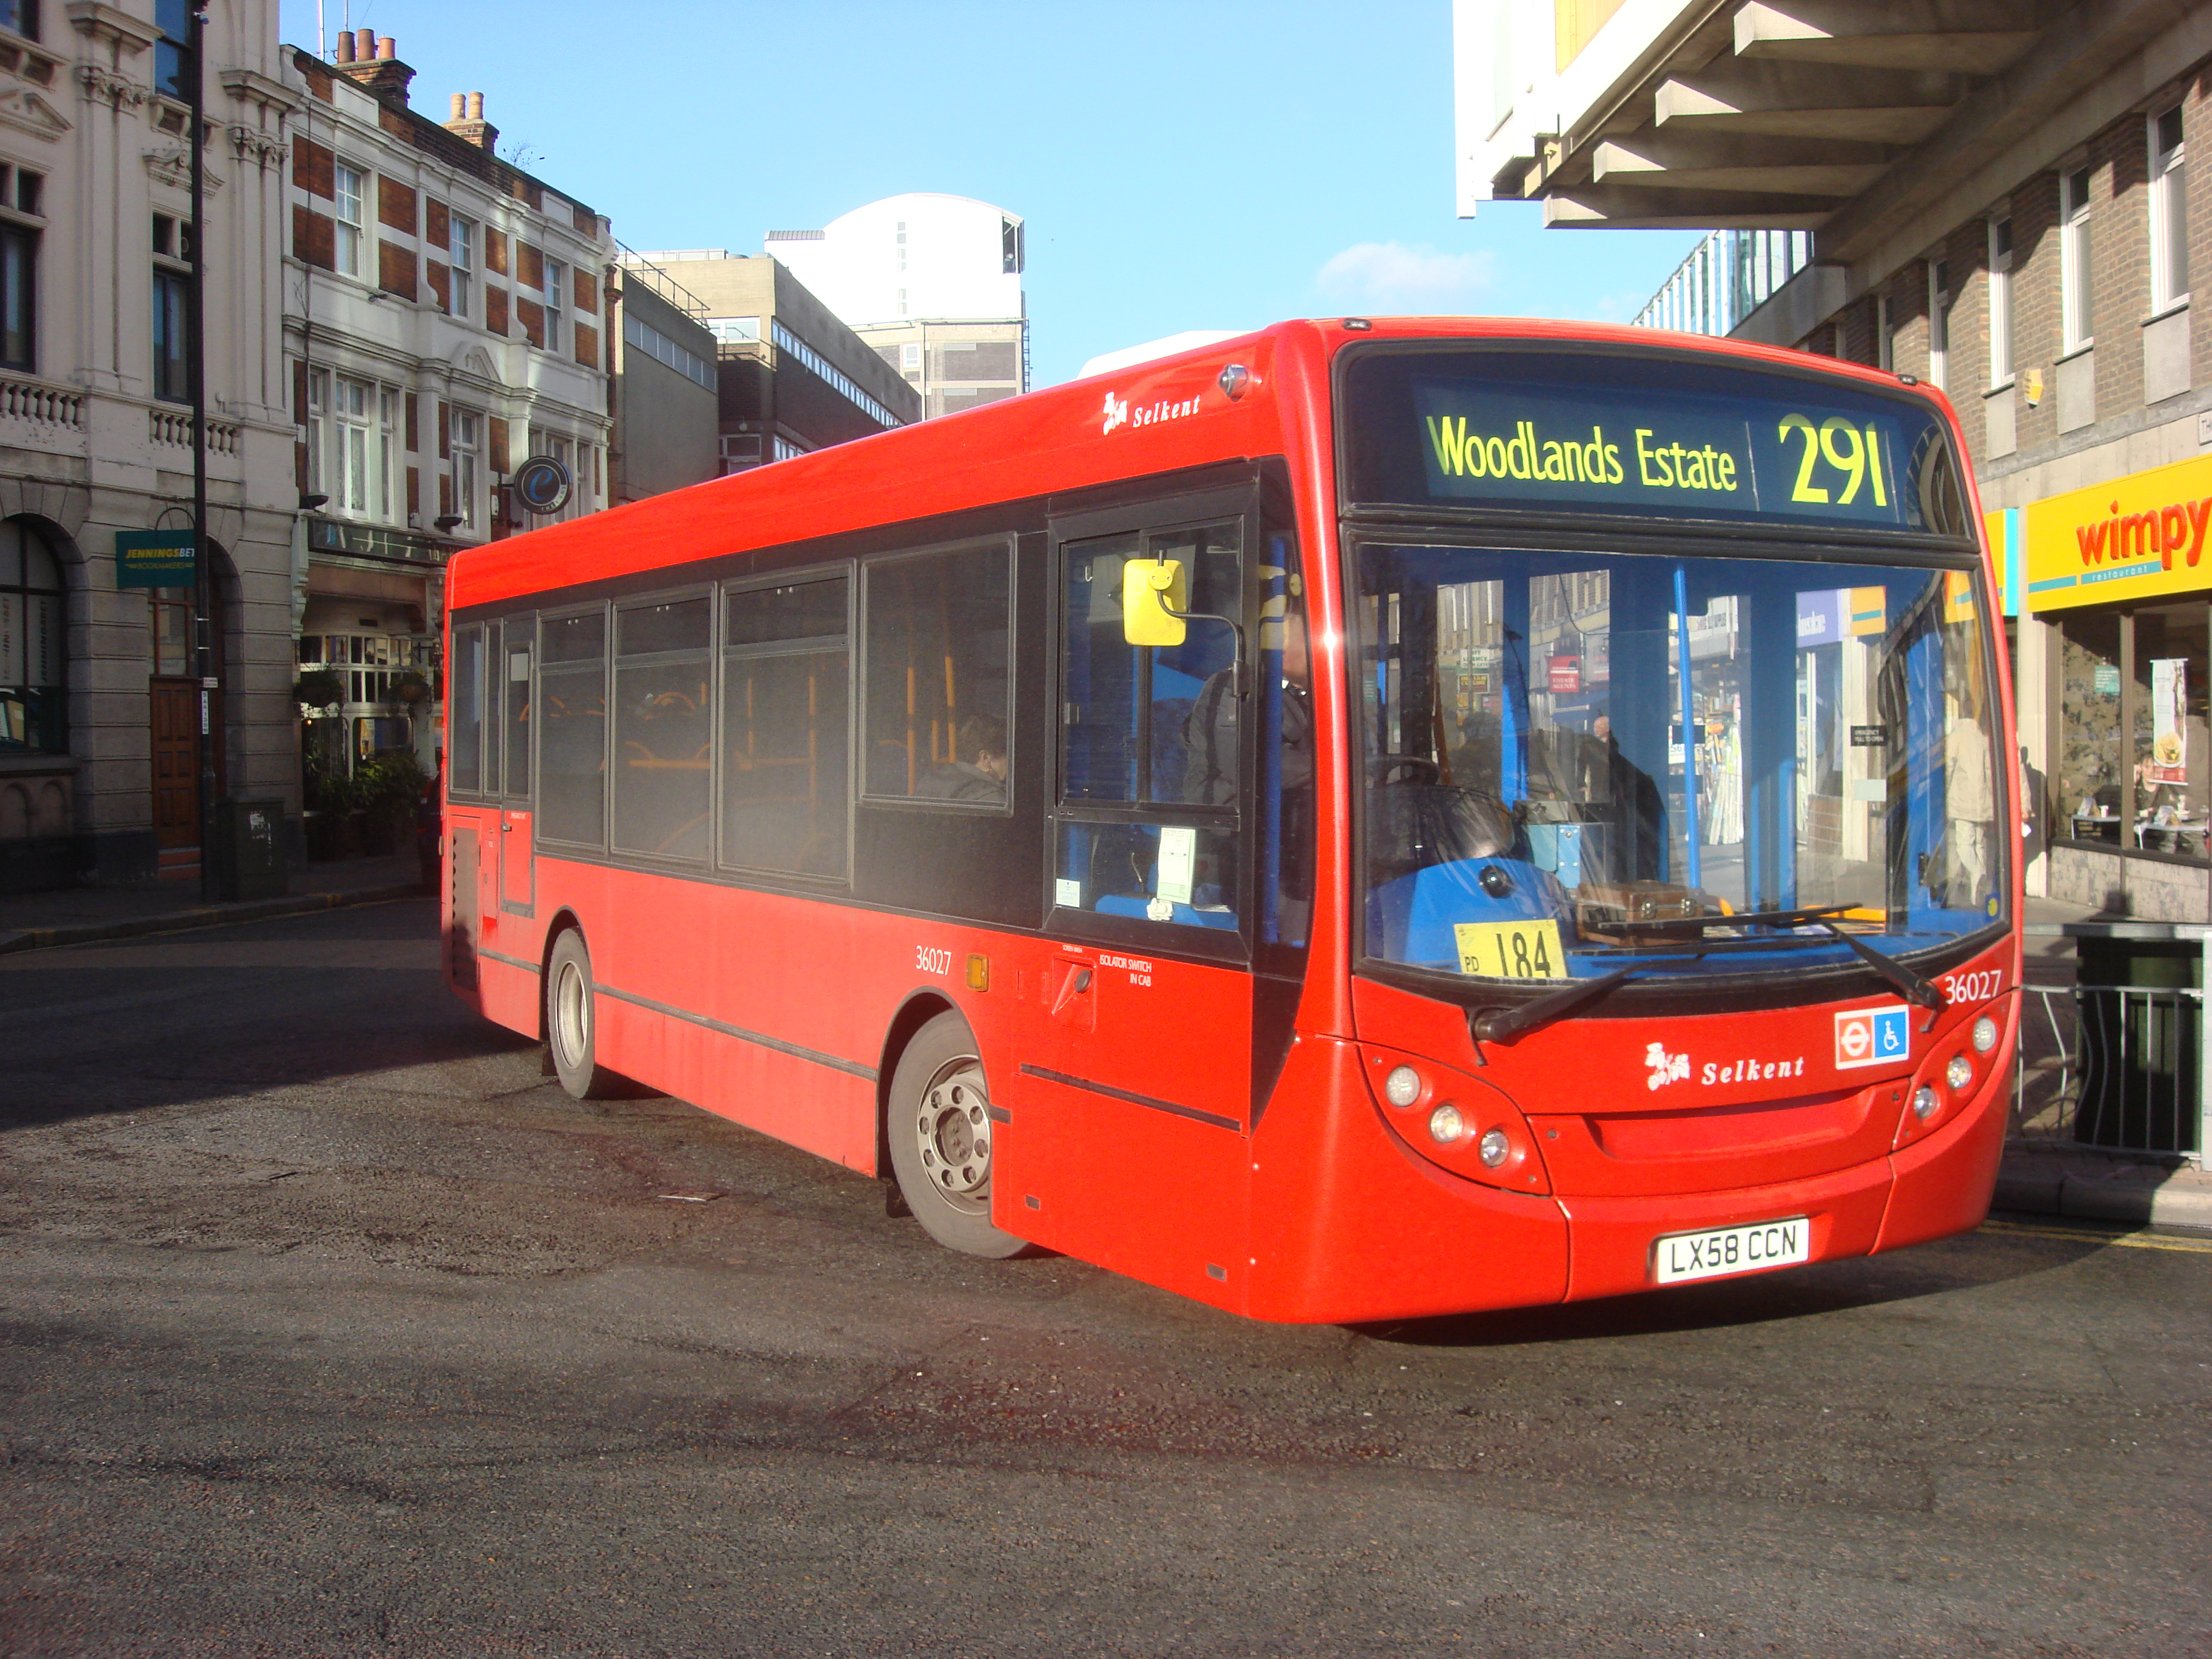 File:London Bus route 291.jpg